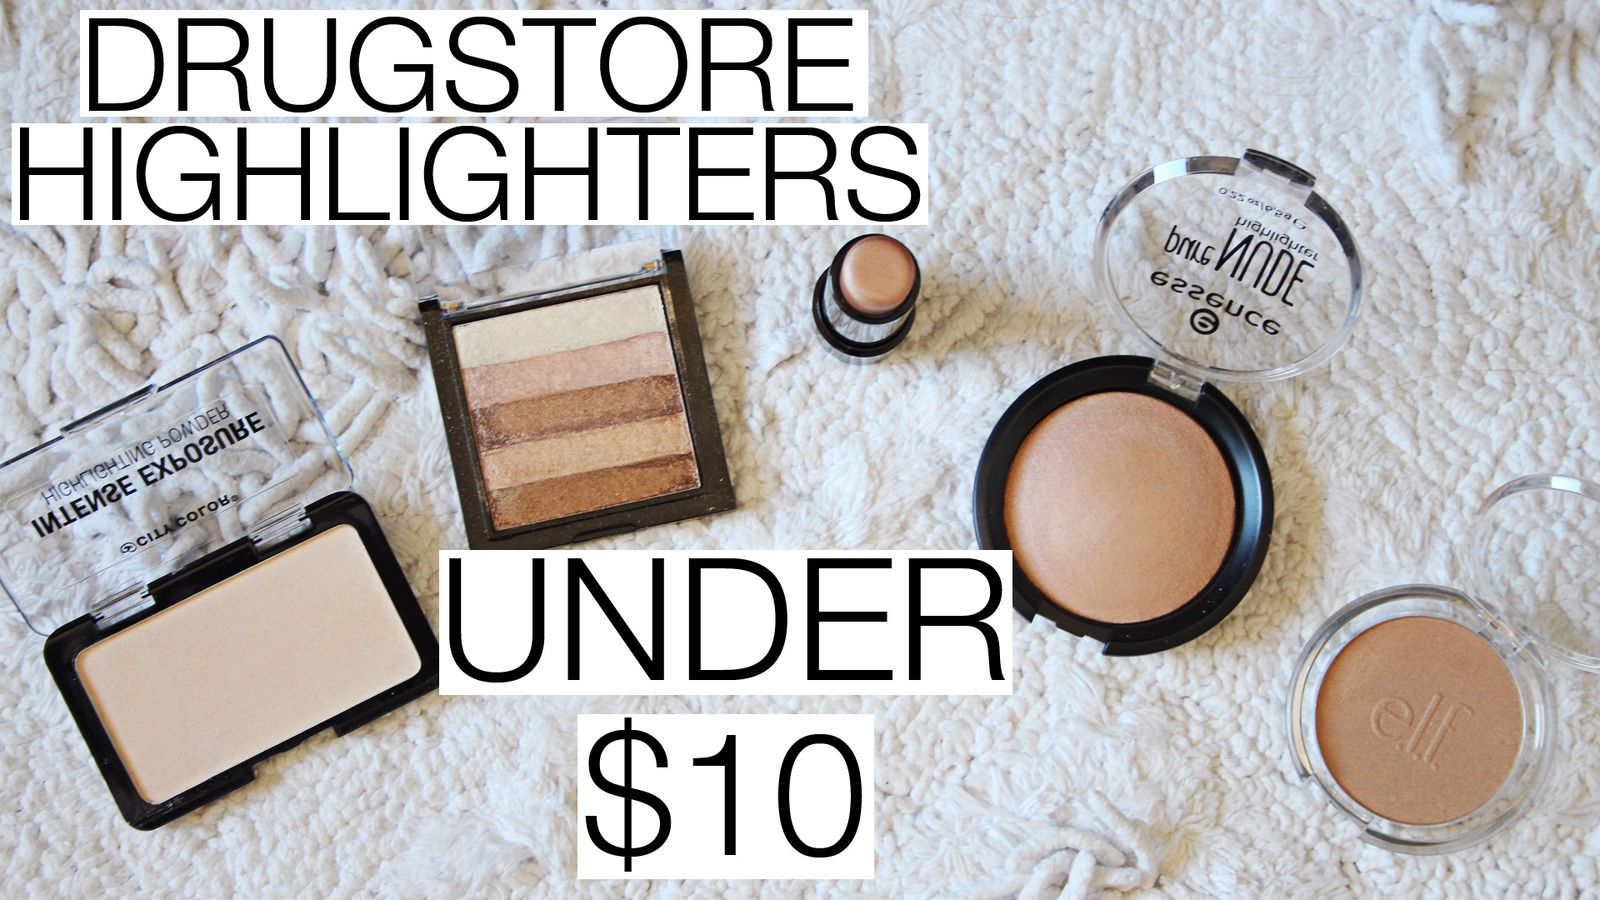 To 5 Drugstore Highlighters UNDER $10!